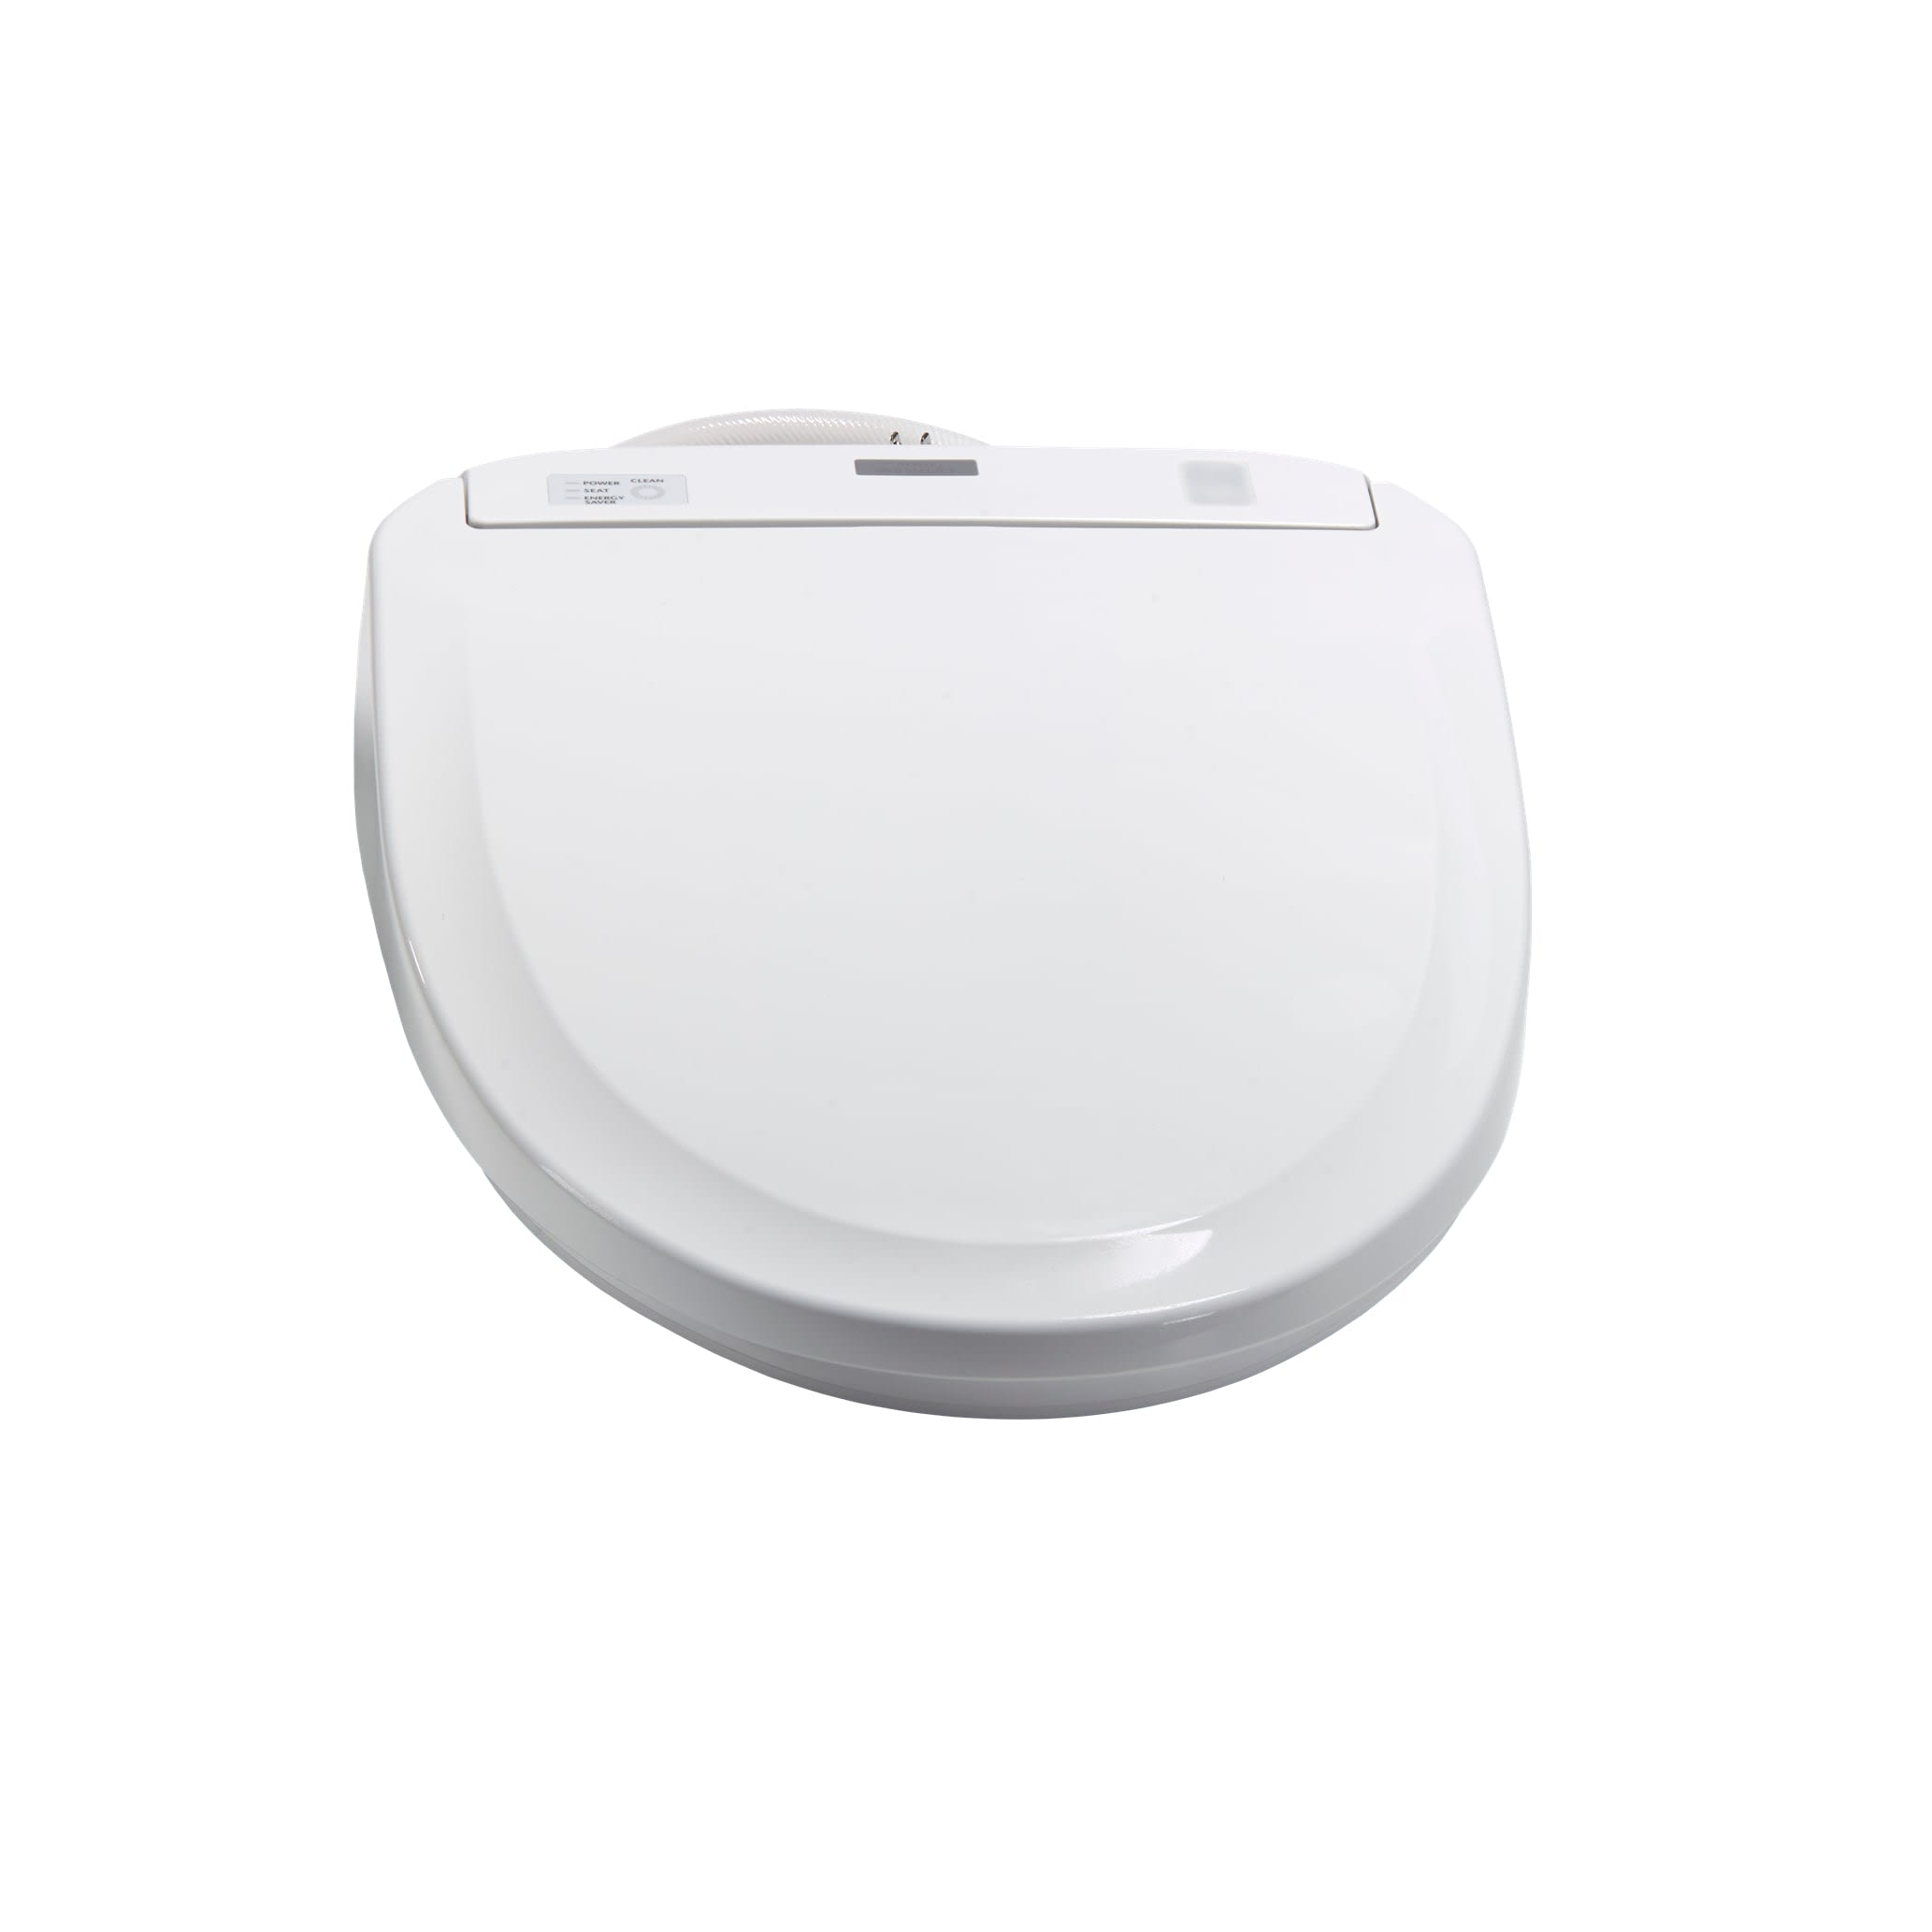 Magnificent Toto Toilet With Built In Bidet Photos The